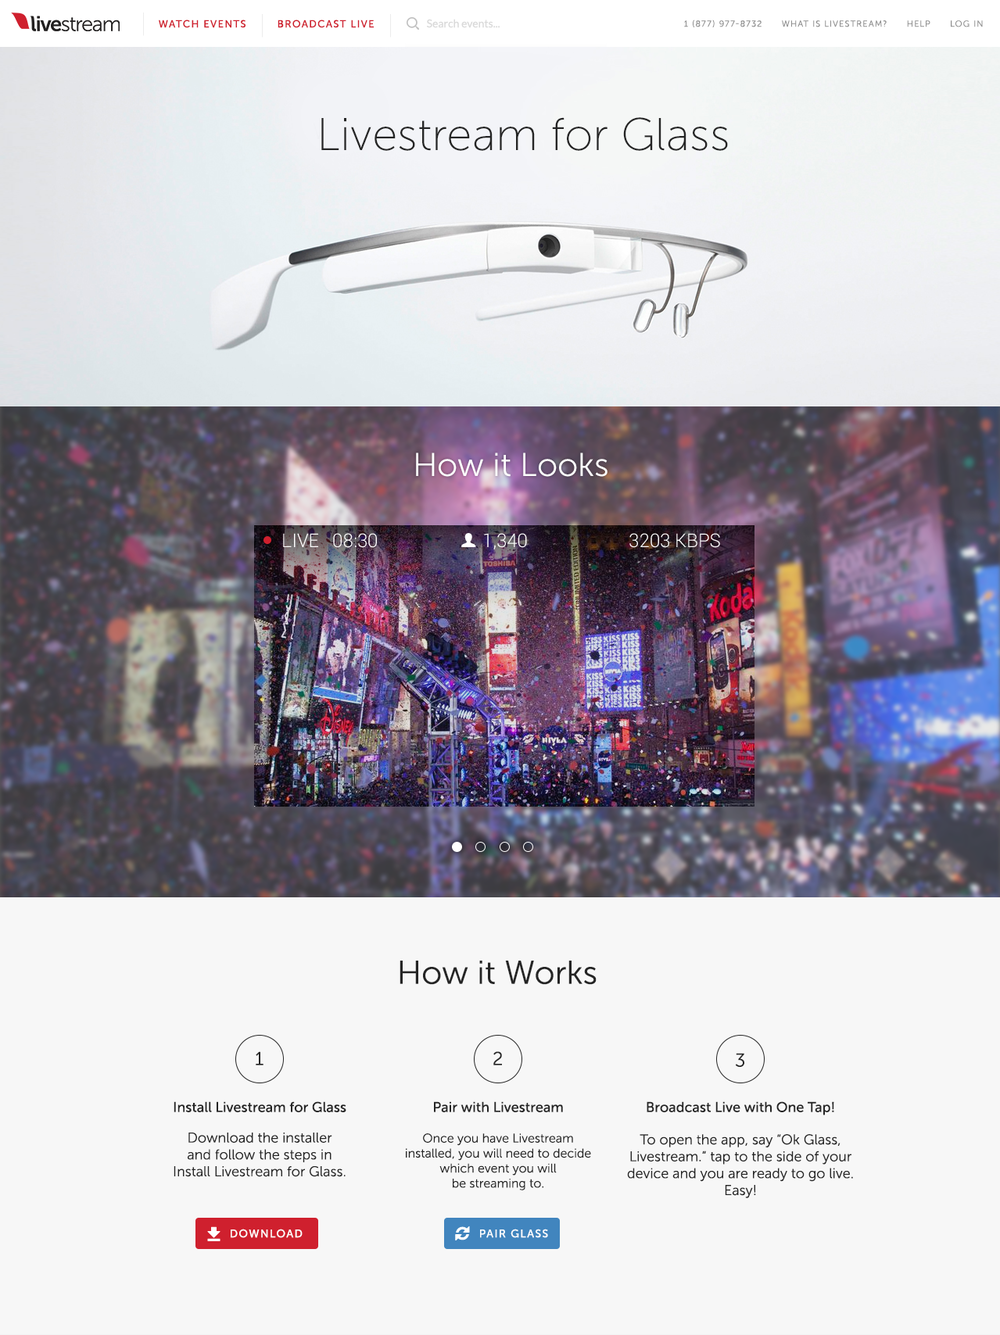 Google Glass website on Livestream.